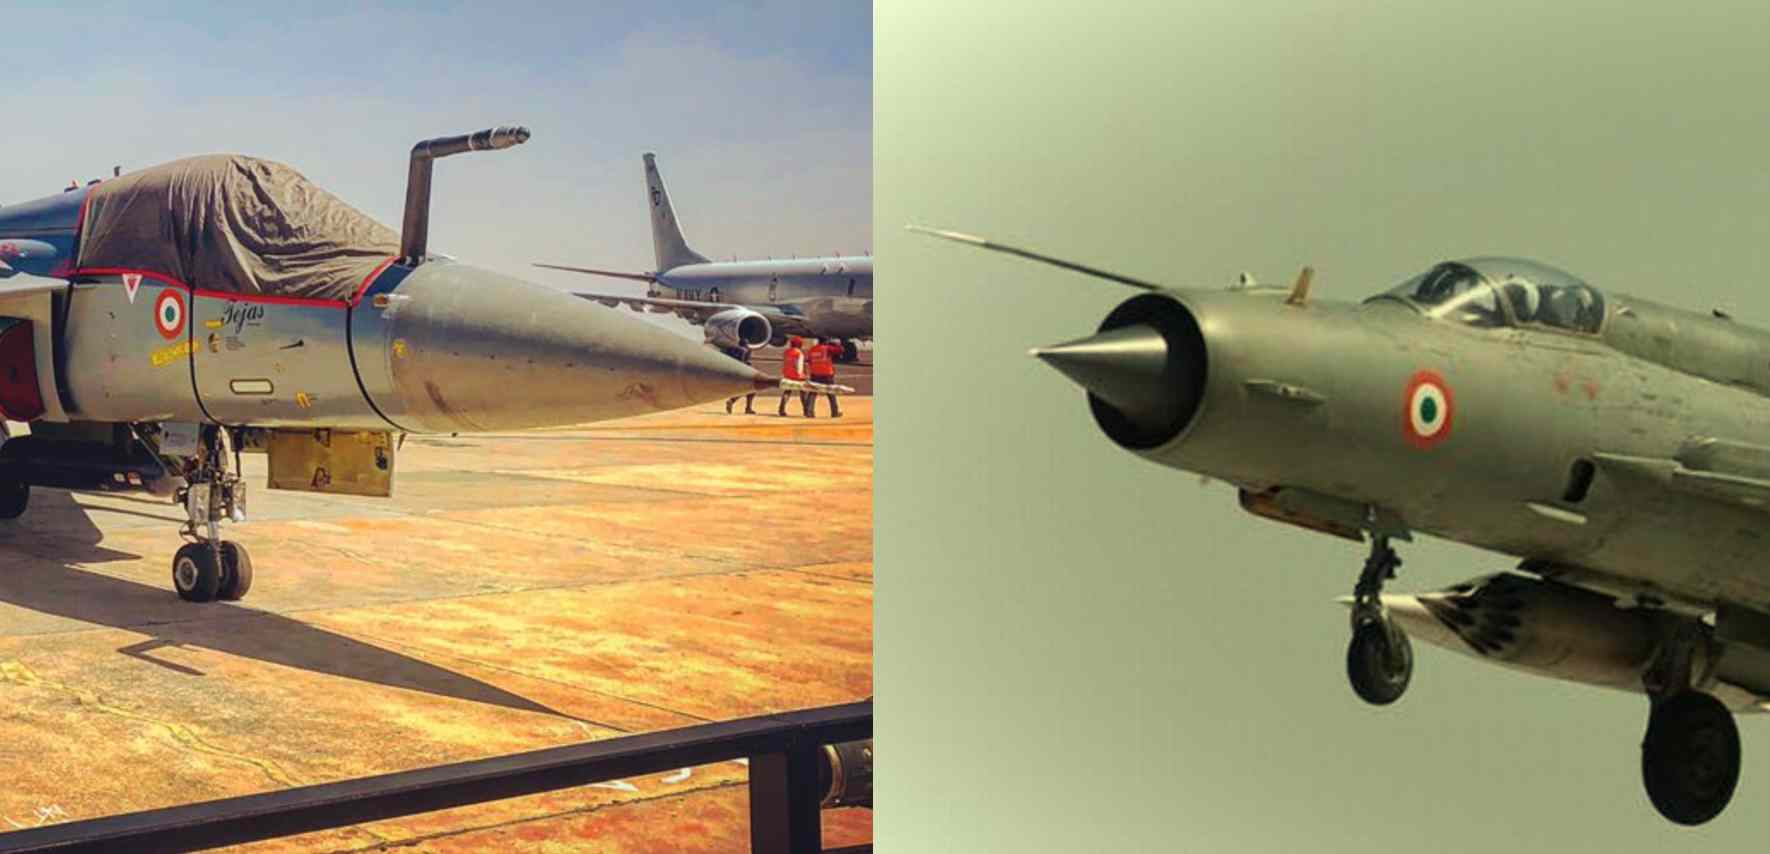 Never A More Urgent Time To Replace The IAF's MiG-21s With India's Tejas